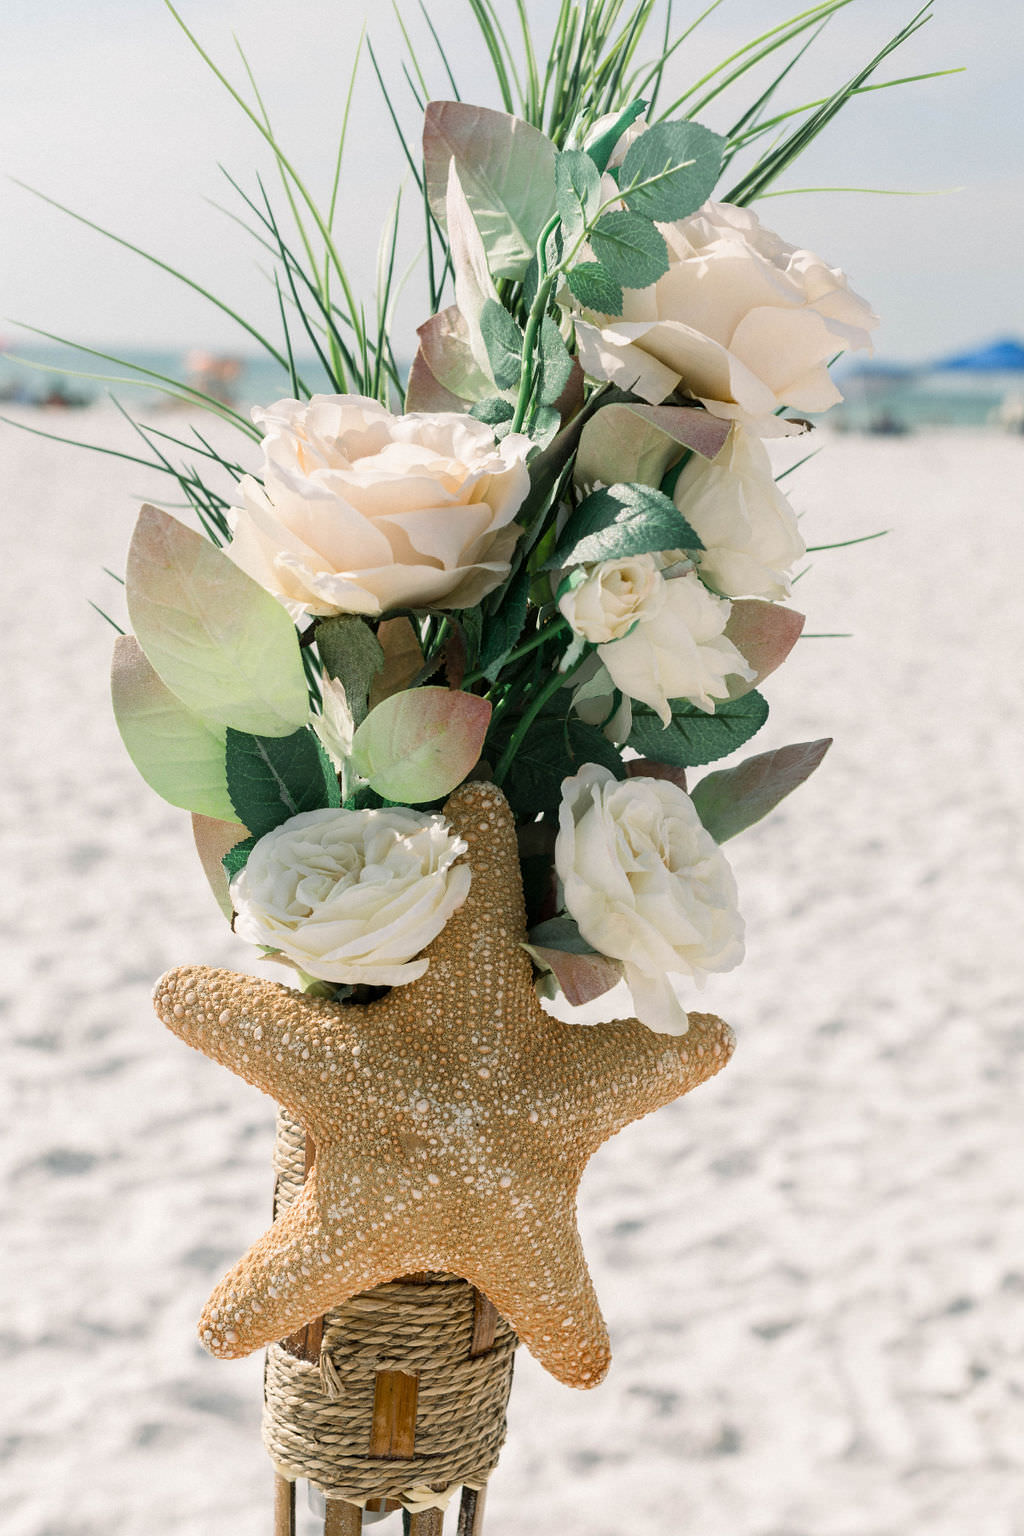 Rustic Beach Elegant Wedding Ceremony Decor, Blush and White Ivory Roses, Greenery Leaves, and Starfish | Clearwater Beach Wedding Planner Gulf Beach Weddings